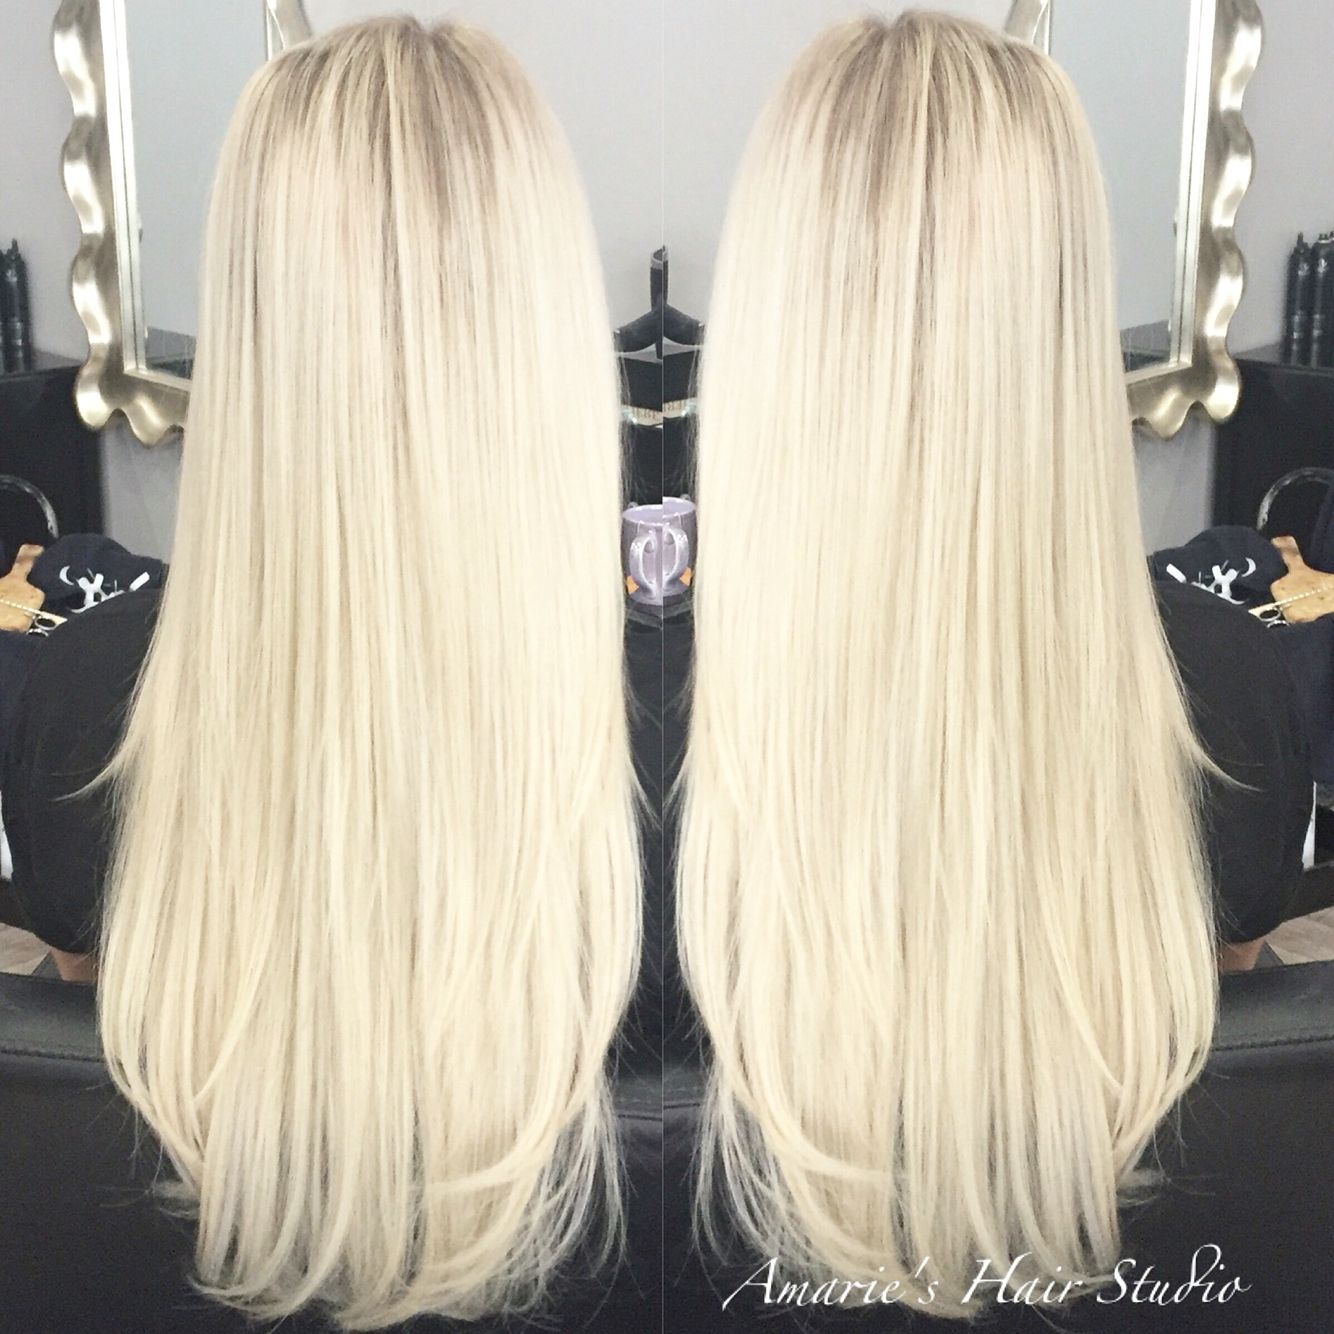 Bright Blonde Bombshell Hair Extensions Blonde Ambition